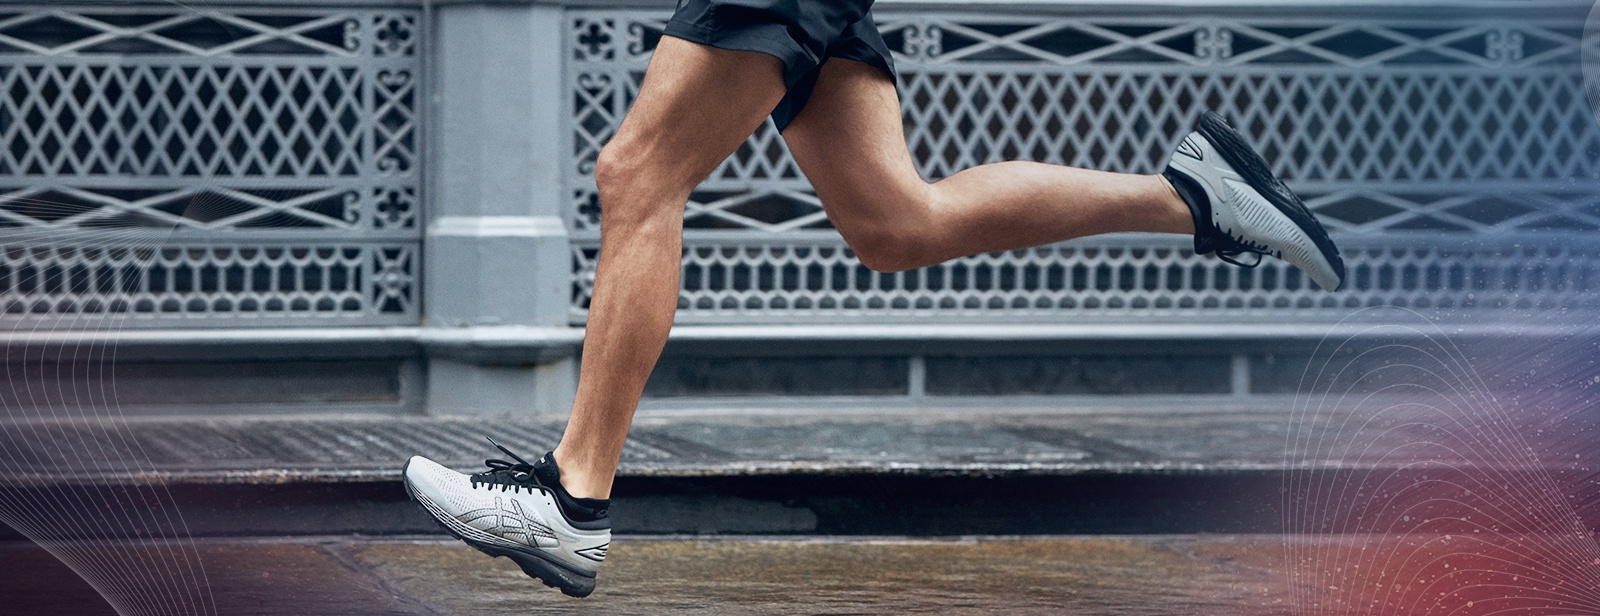 Closeup of the legs of a man running in shorts and white shoes.